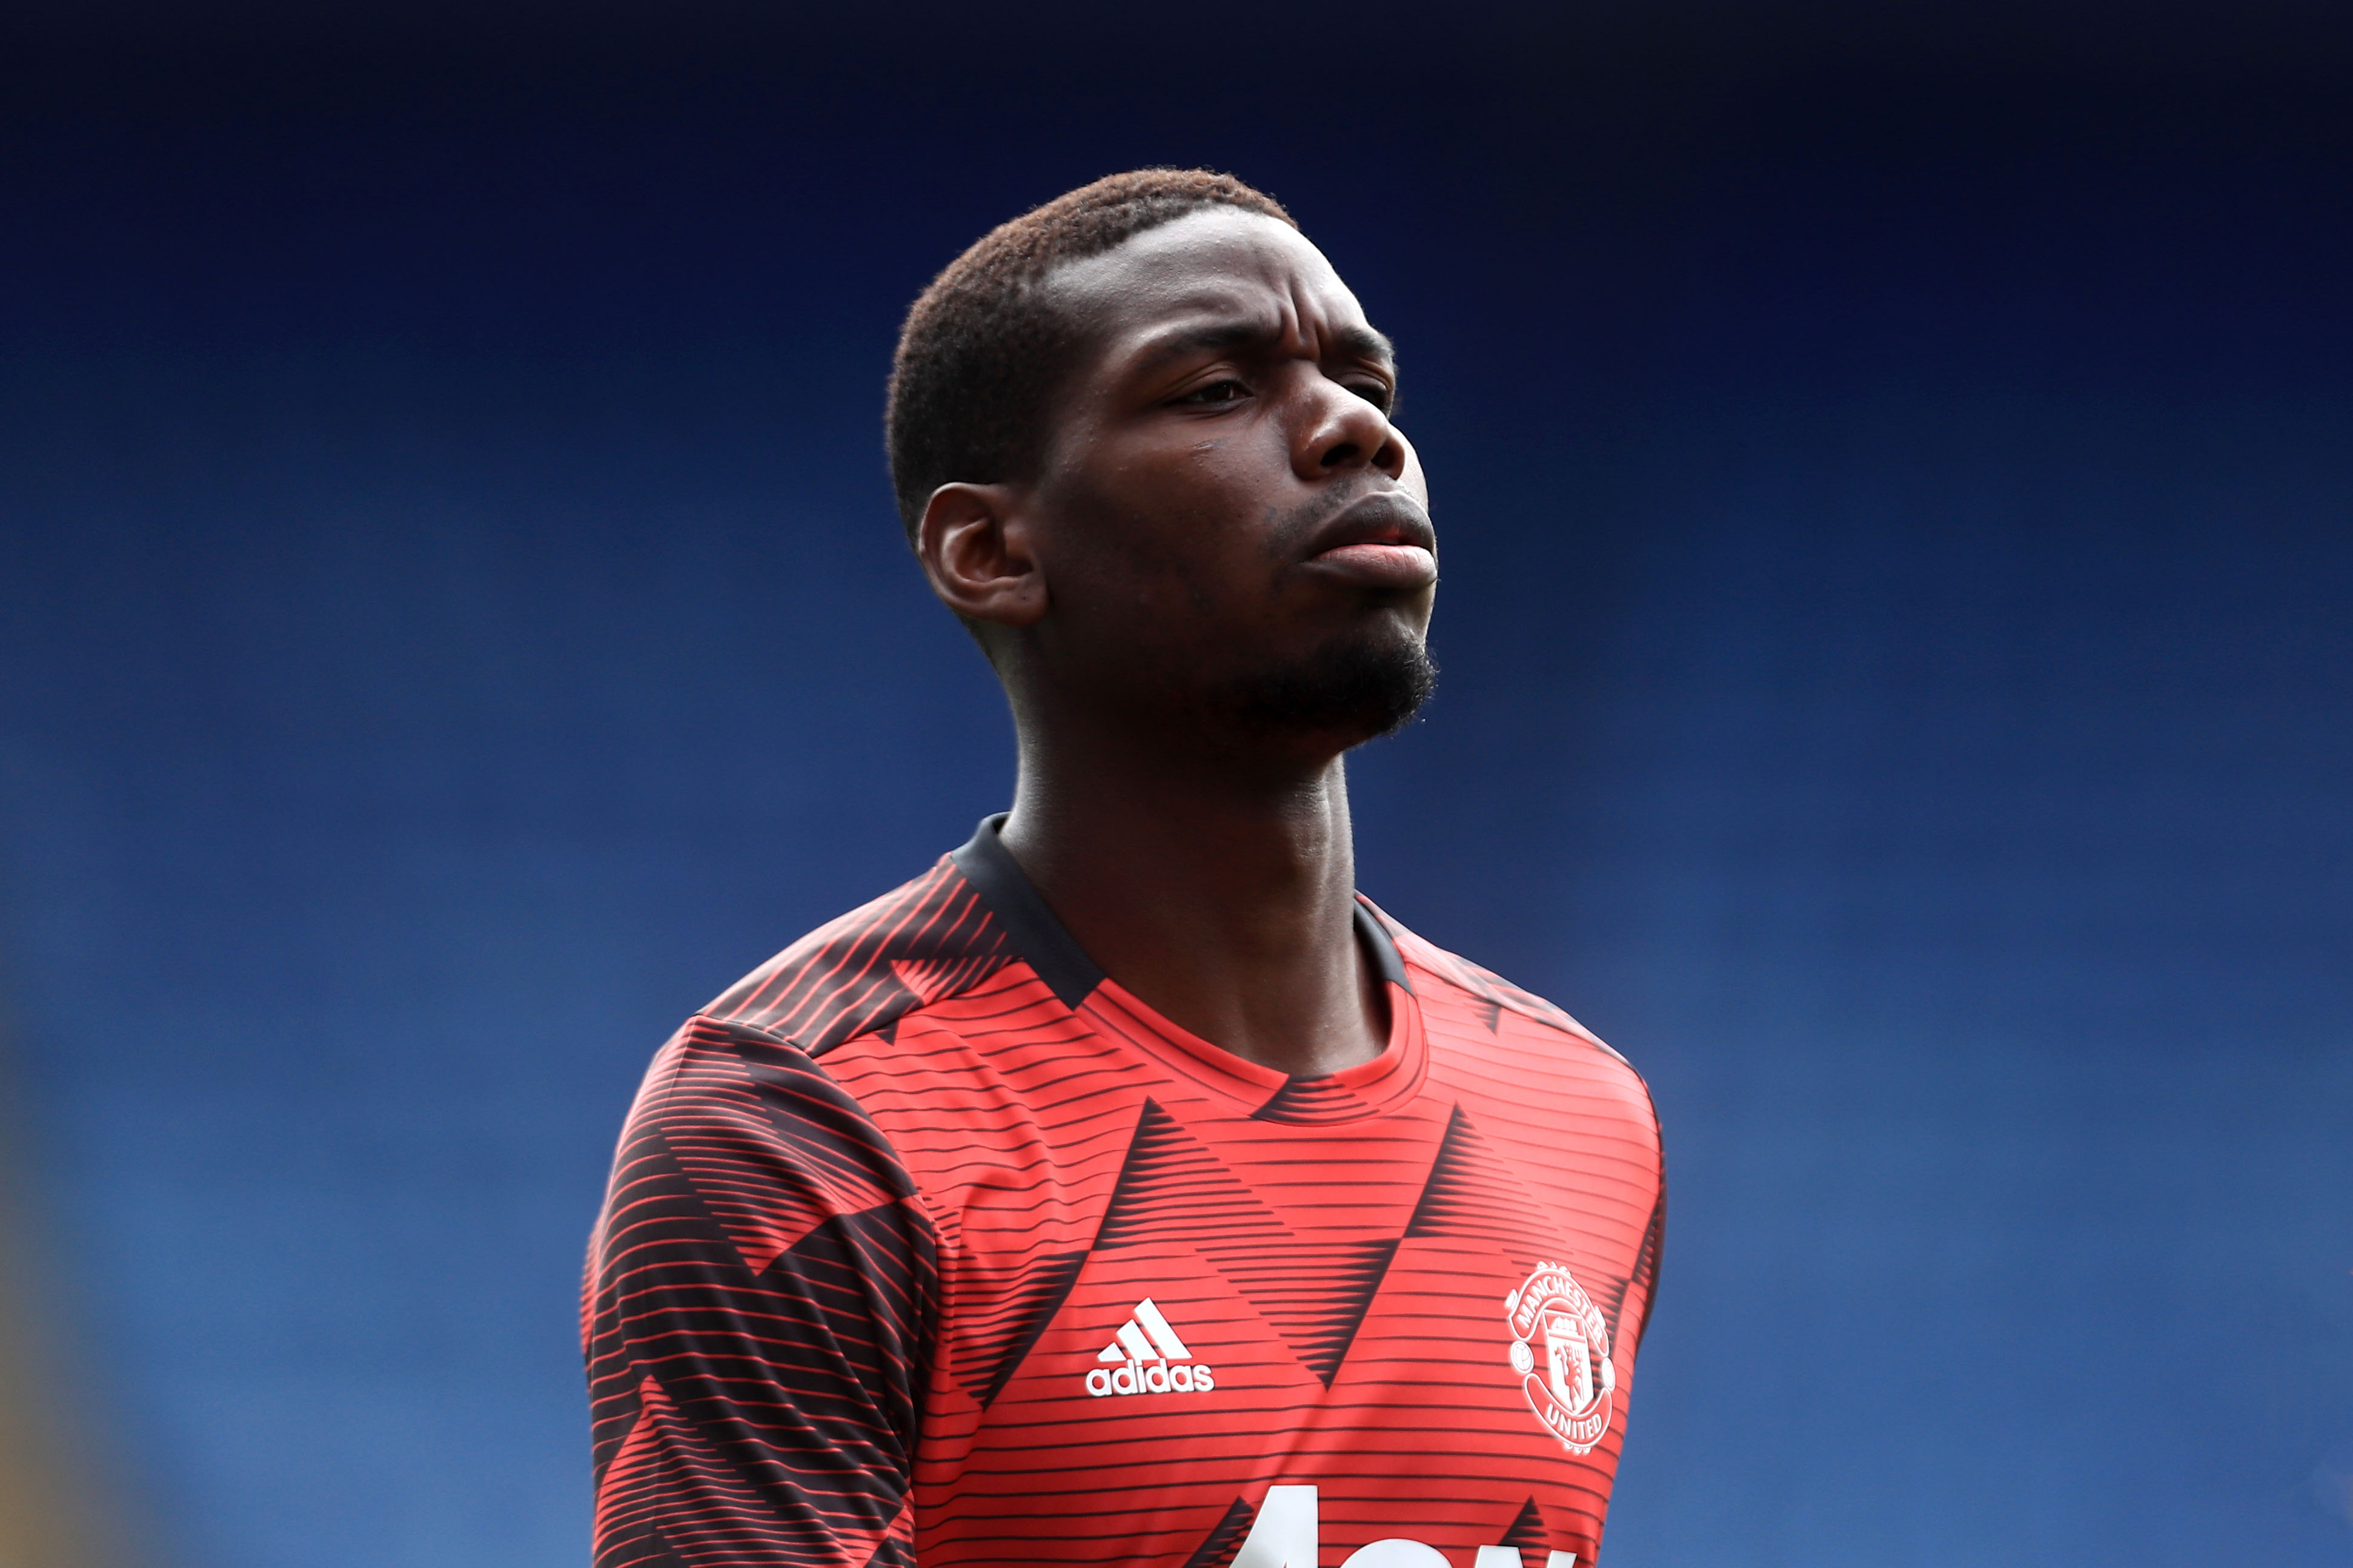 Manchester United's Paul Pogba is pictured during a Premier League match in Leicester, England, on July 26.